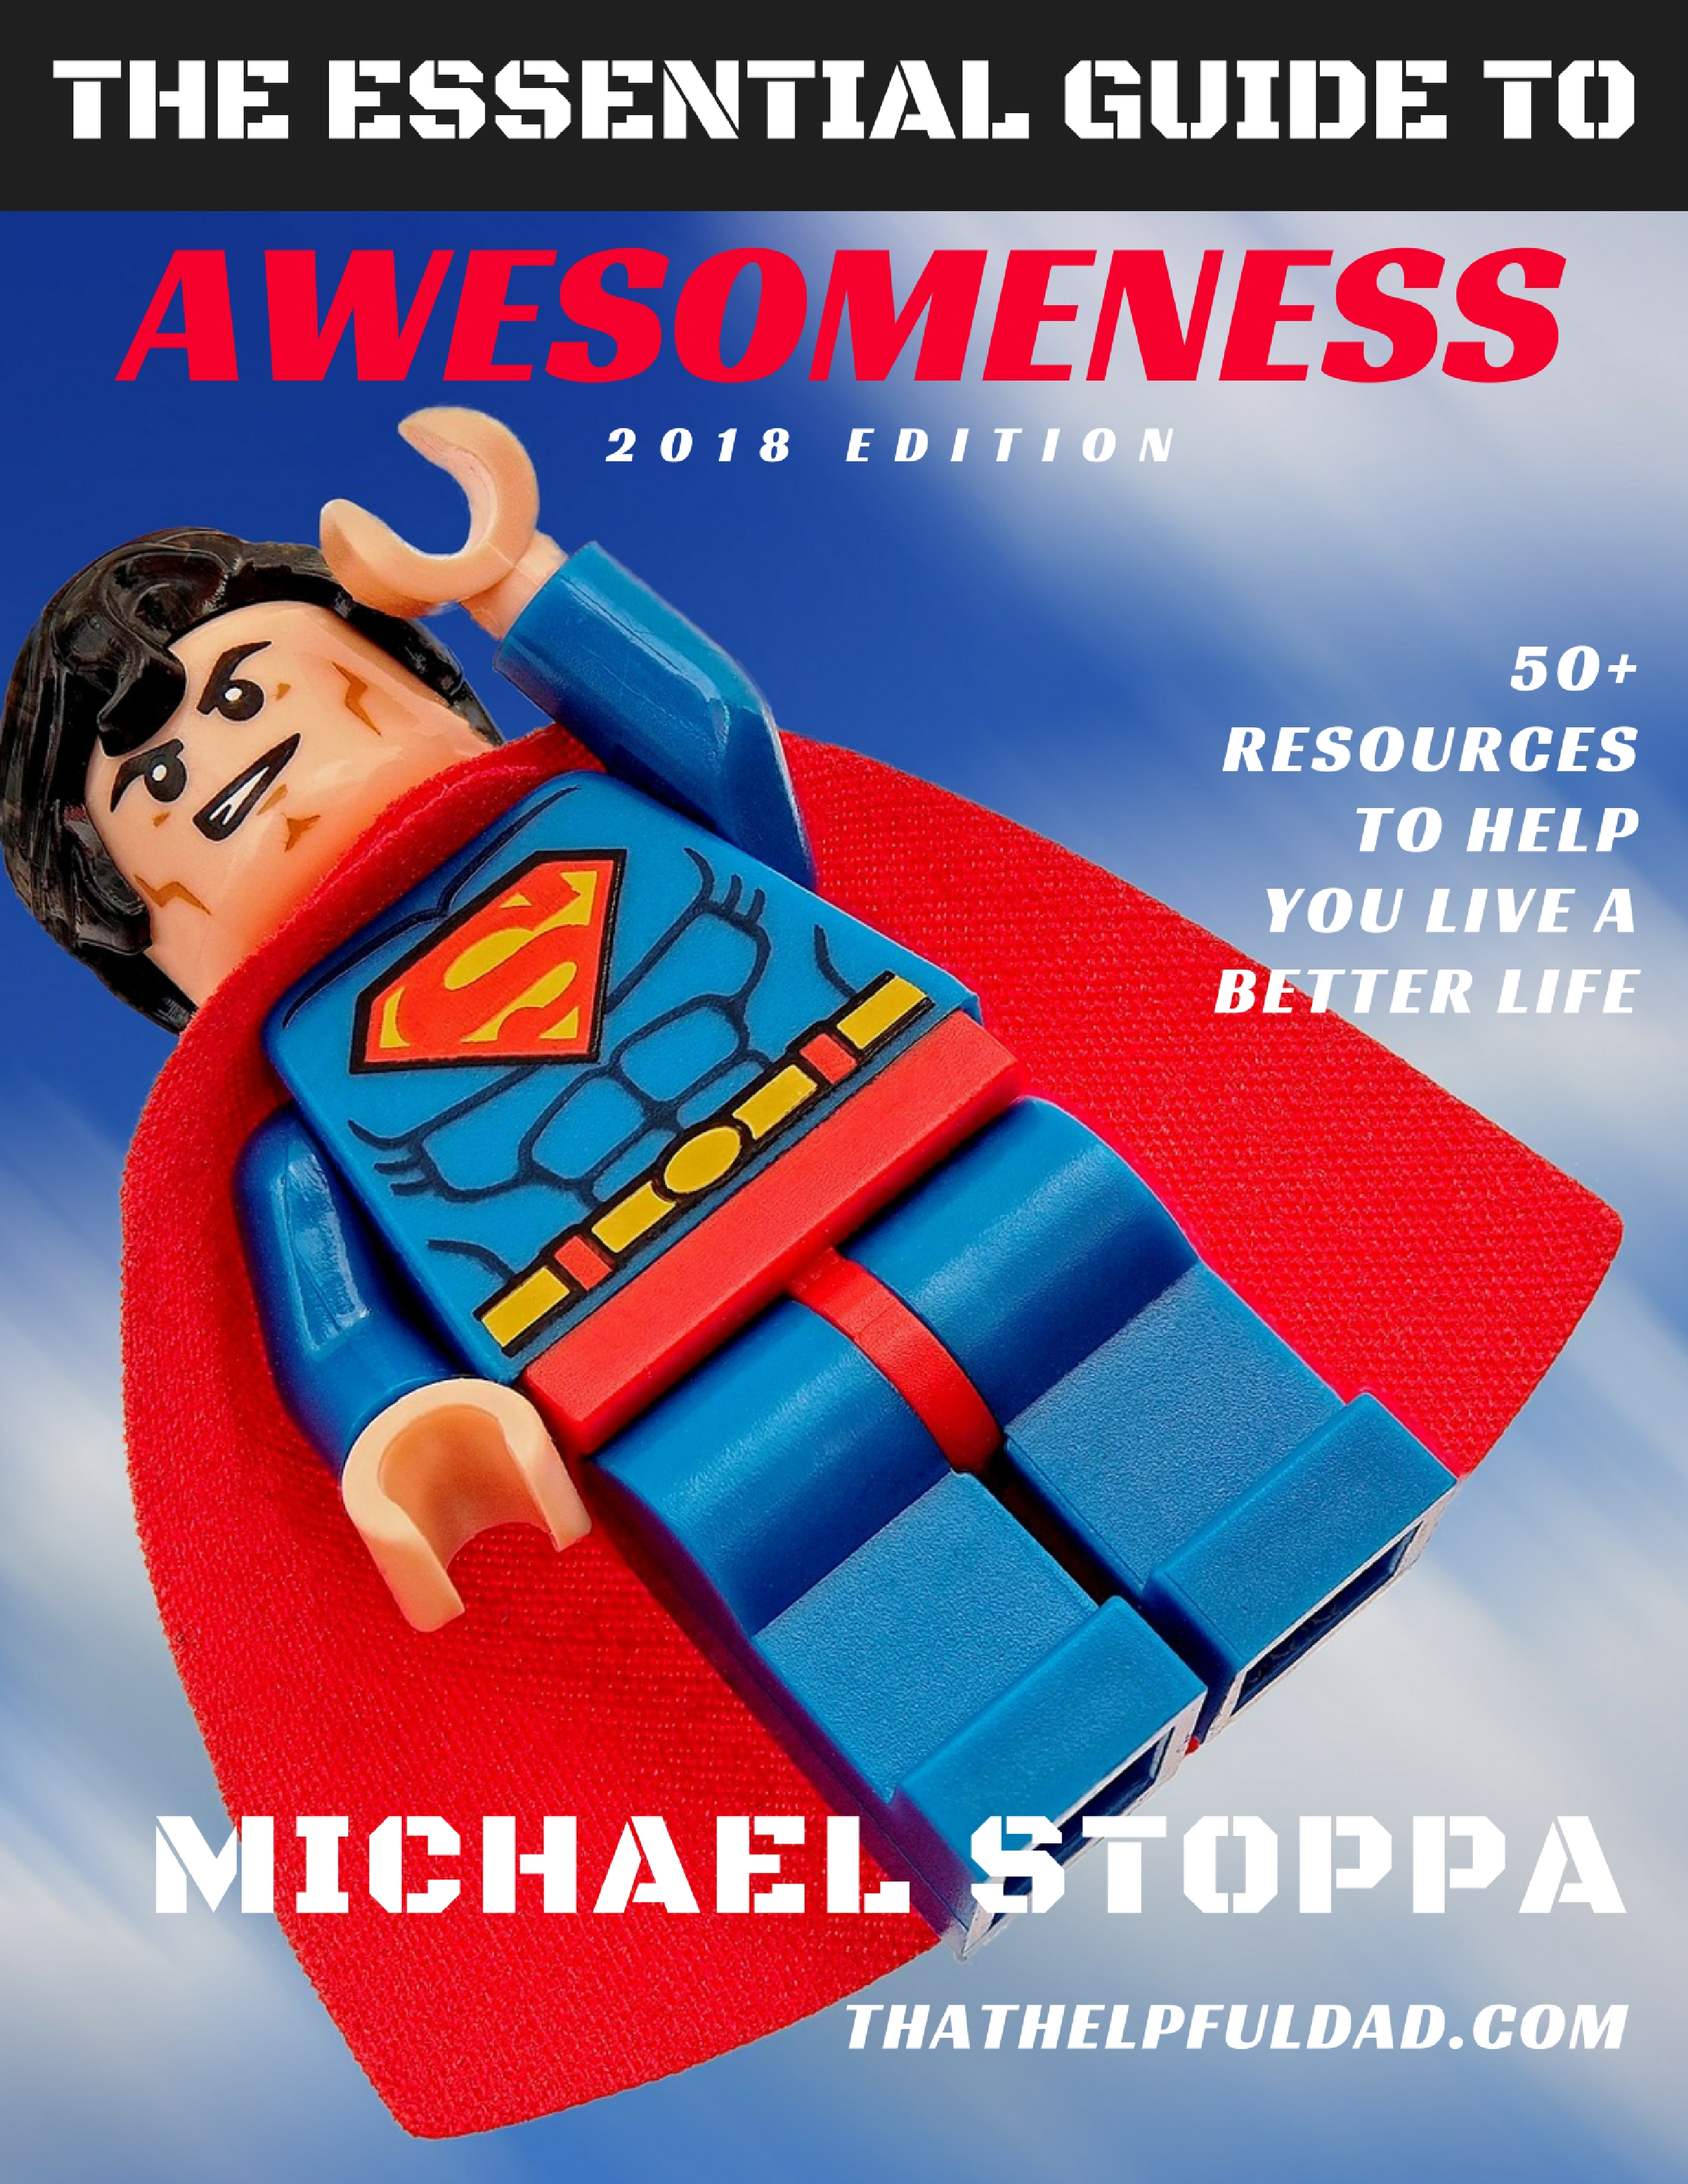 The Essential Guide to Awesomeness